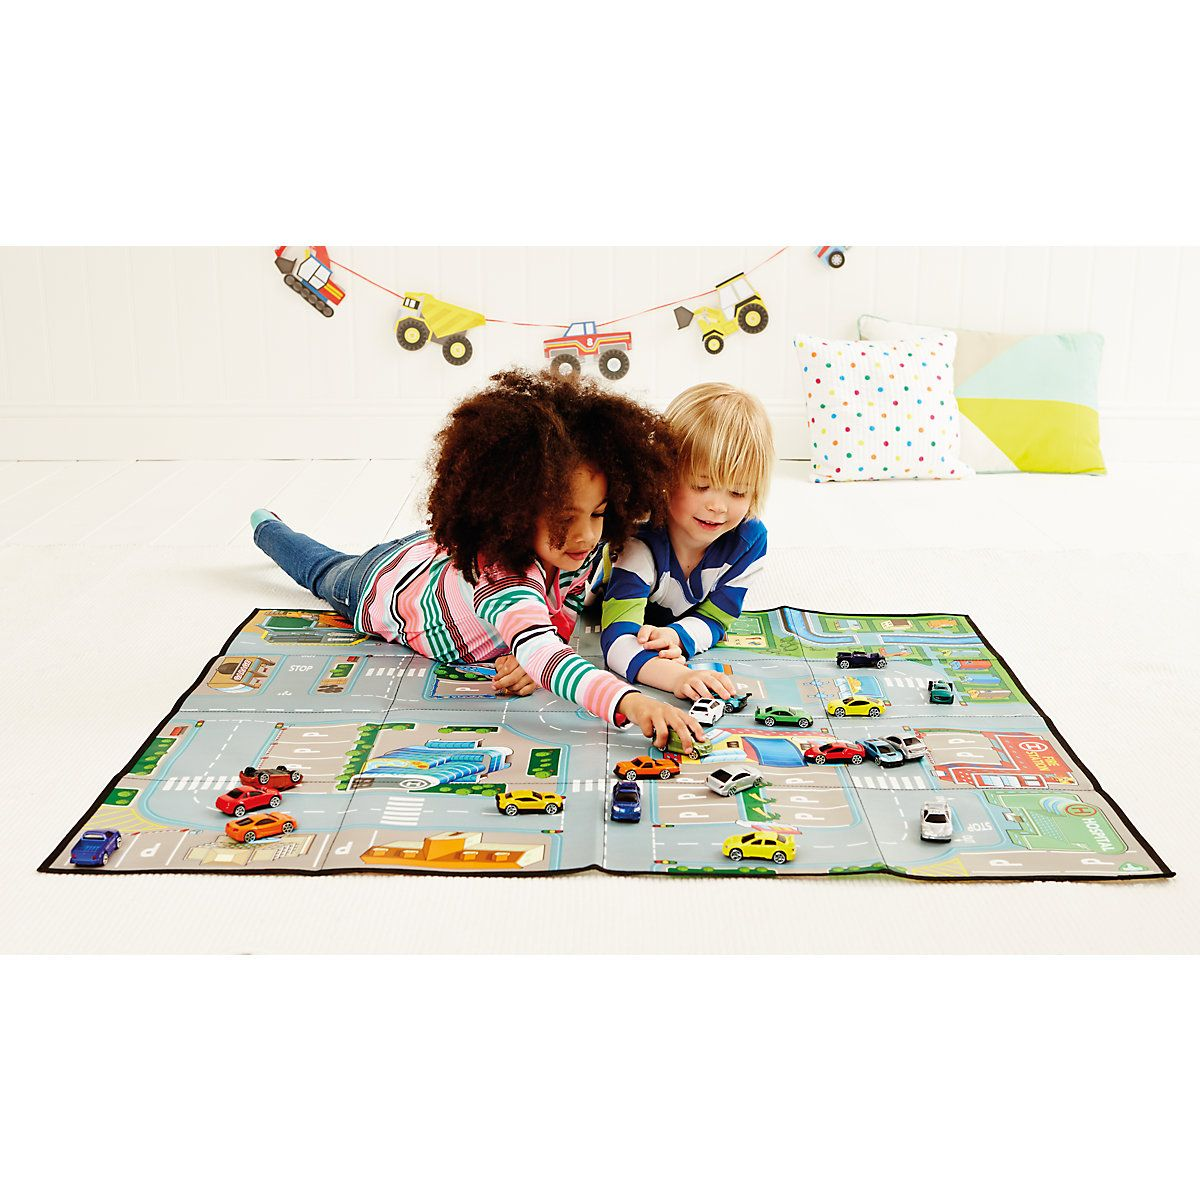 Big City Carpet Playmat : Big City Carpet Playmat : Early